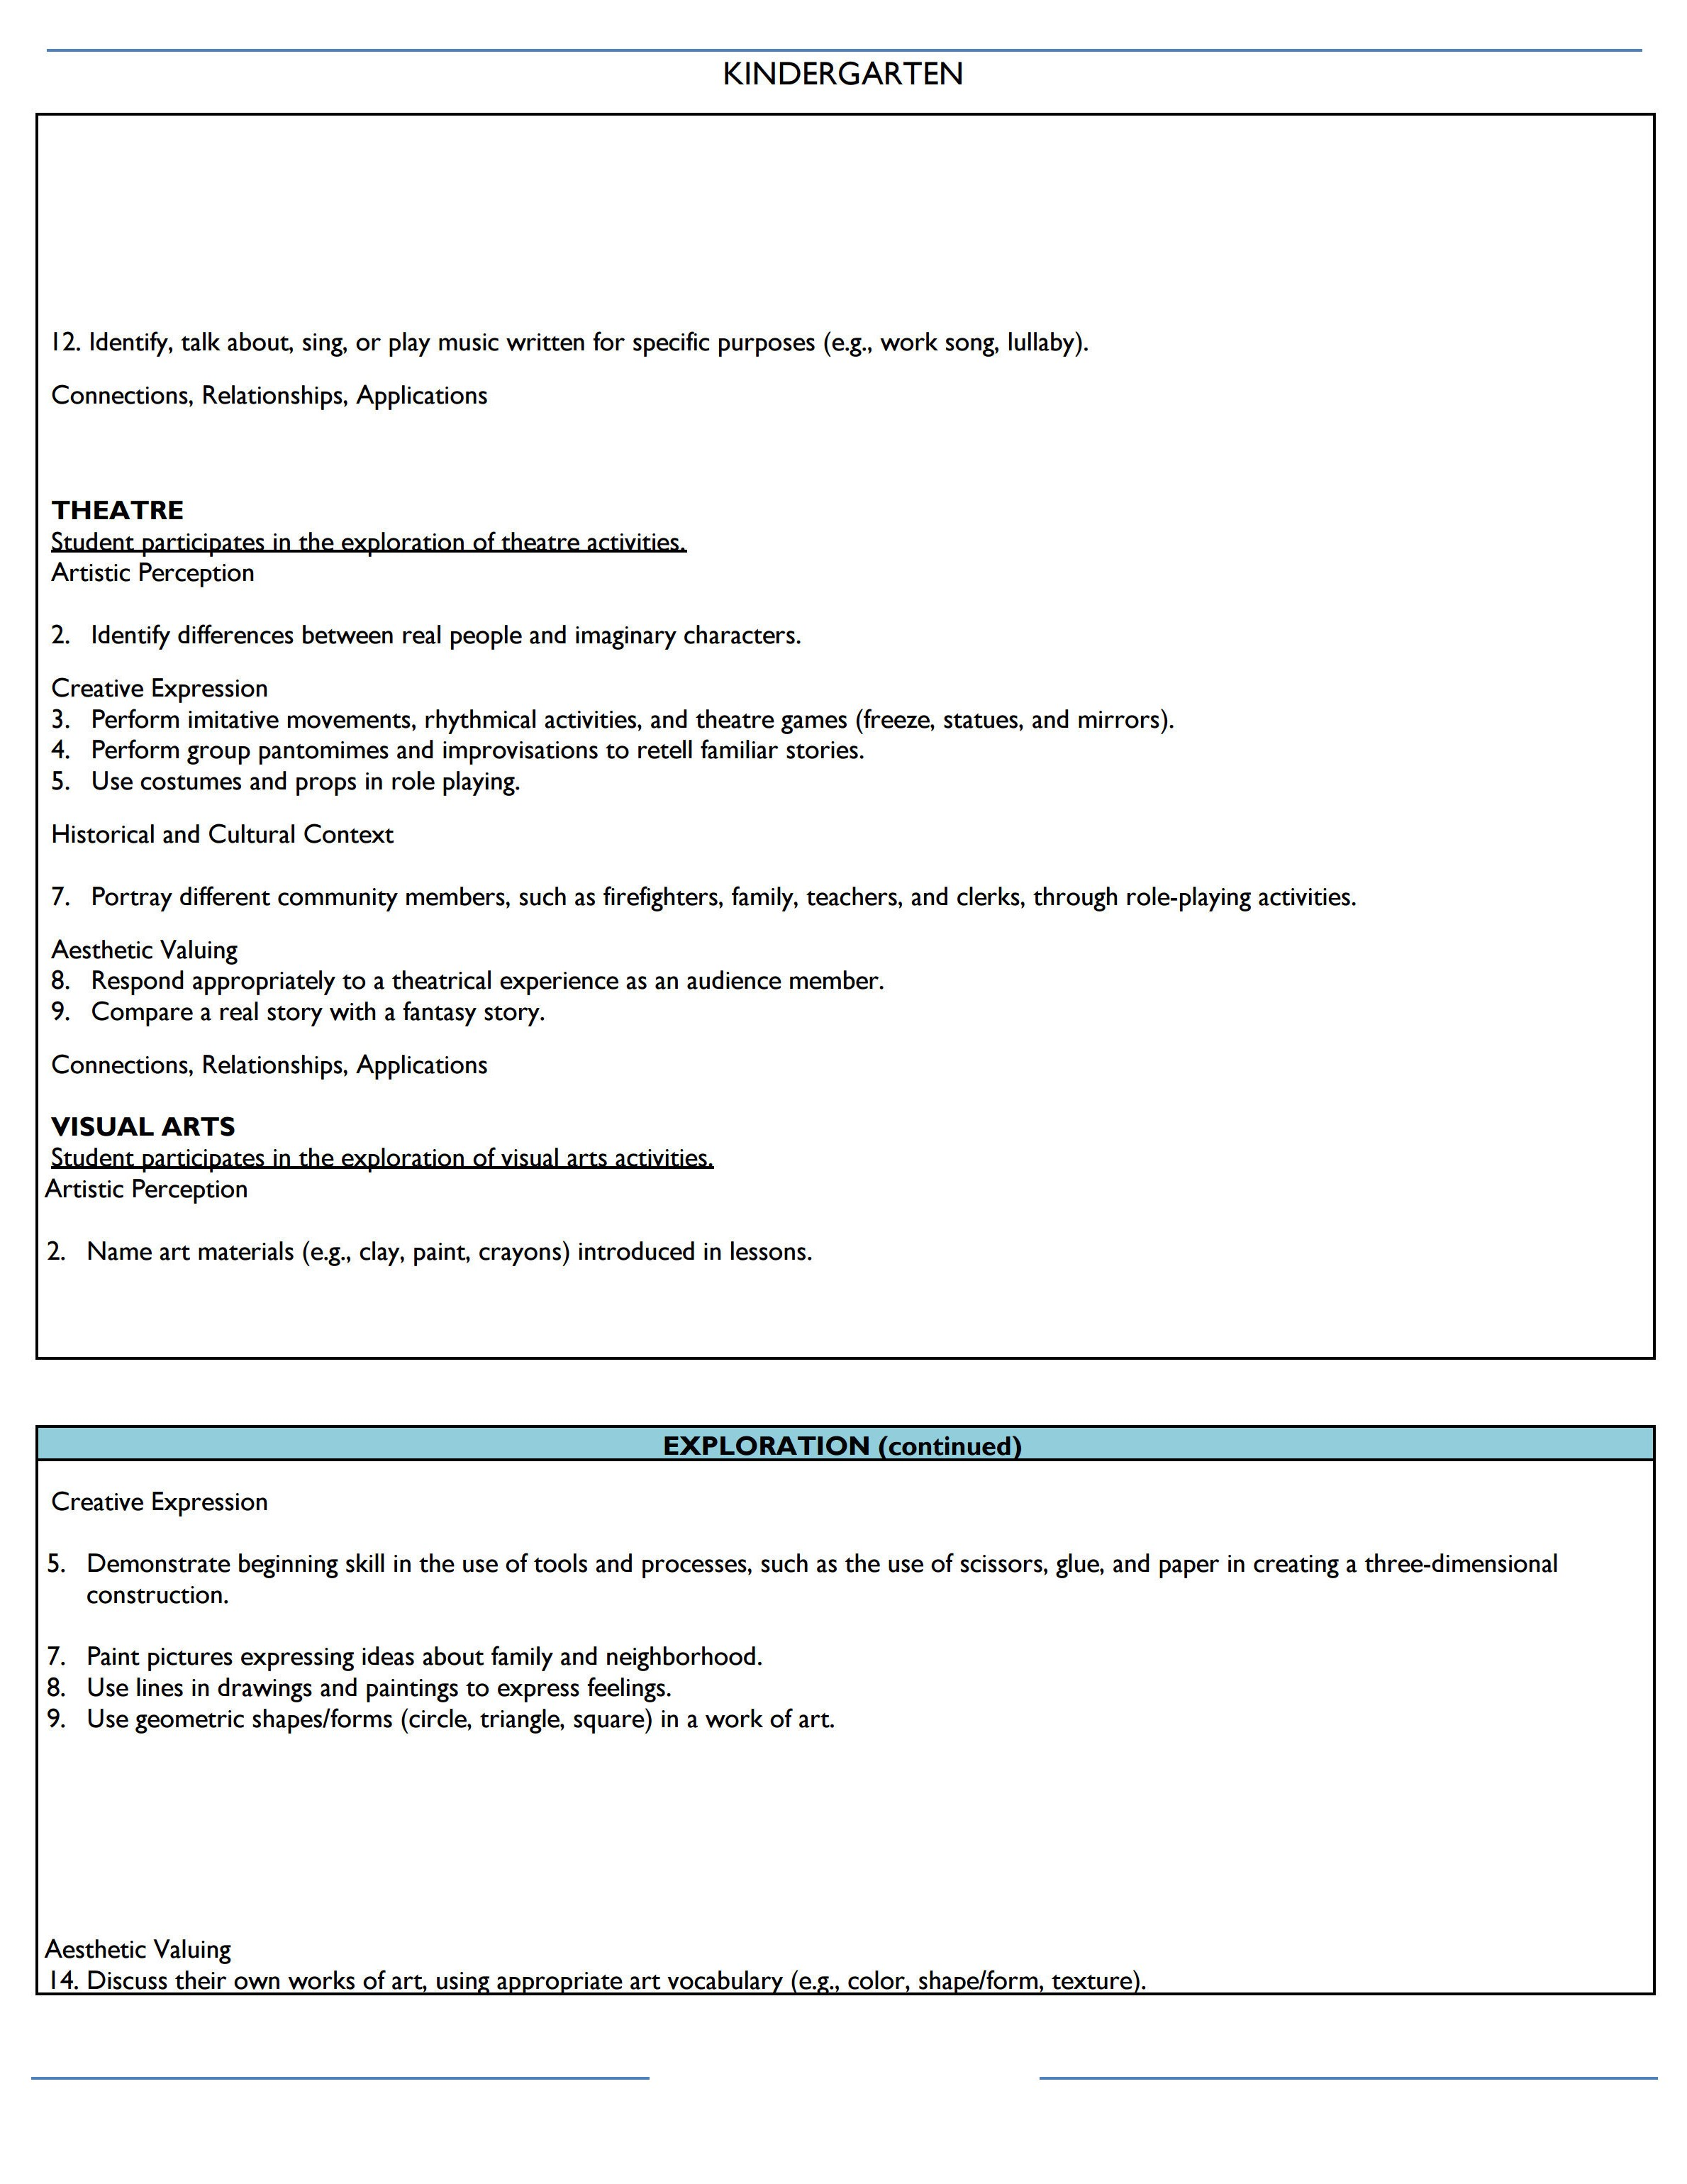 Ms. Amy's Covered TK_K California Standards.doc-8.jpg